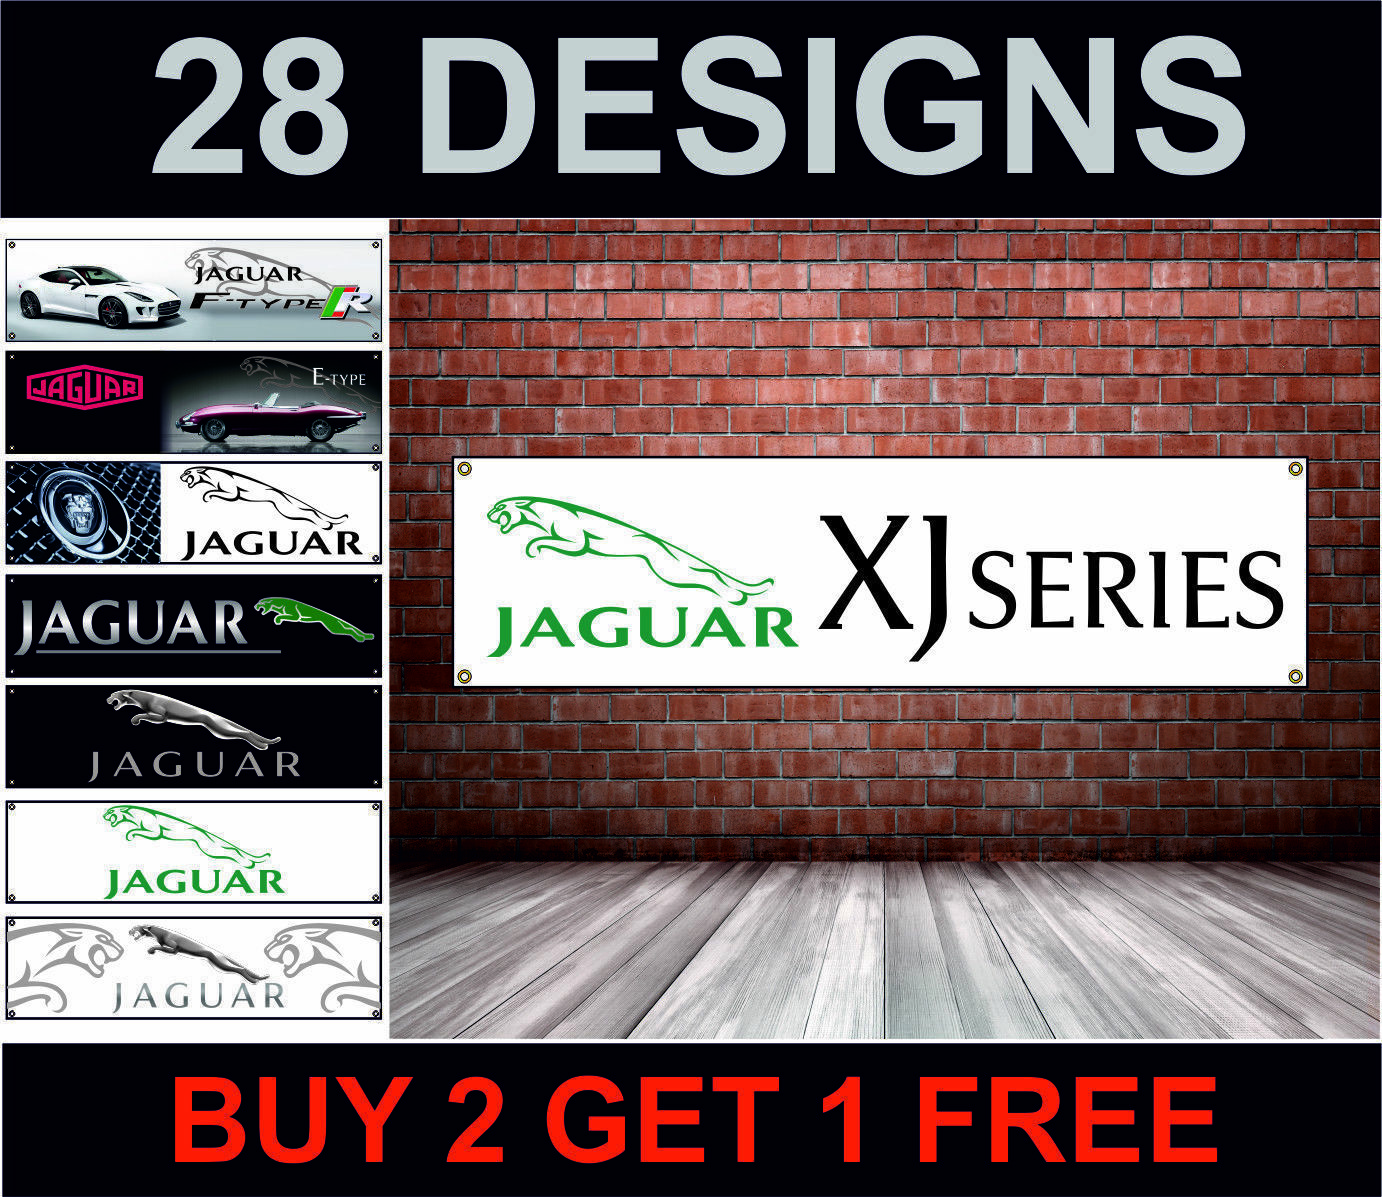 Jaguar xfr jaguar xf banner poster workshop garage showroom office mechanics